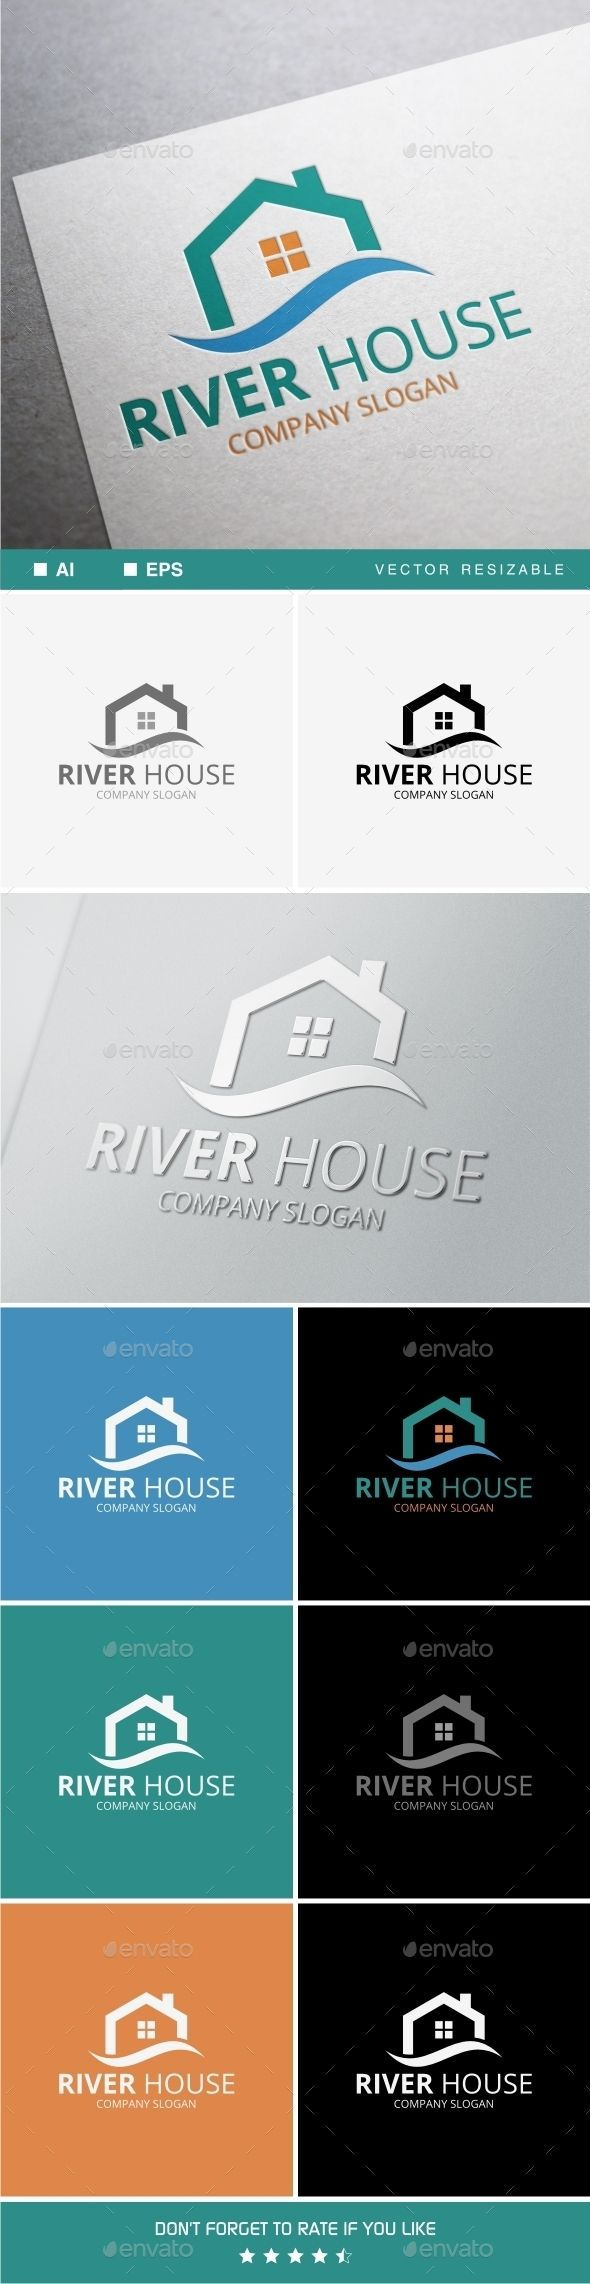 River House Logo by soponyono Easy to edit to your own company name with vector for highly resizable and printing. Suitable for industry like Real Estate and Co